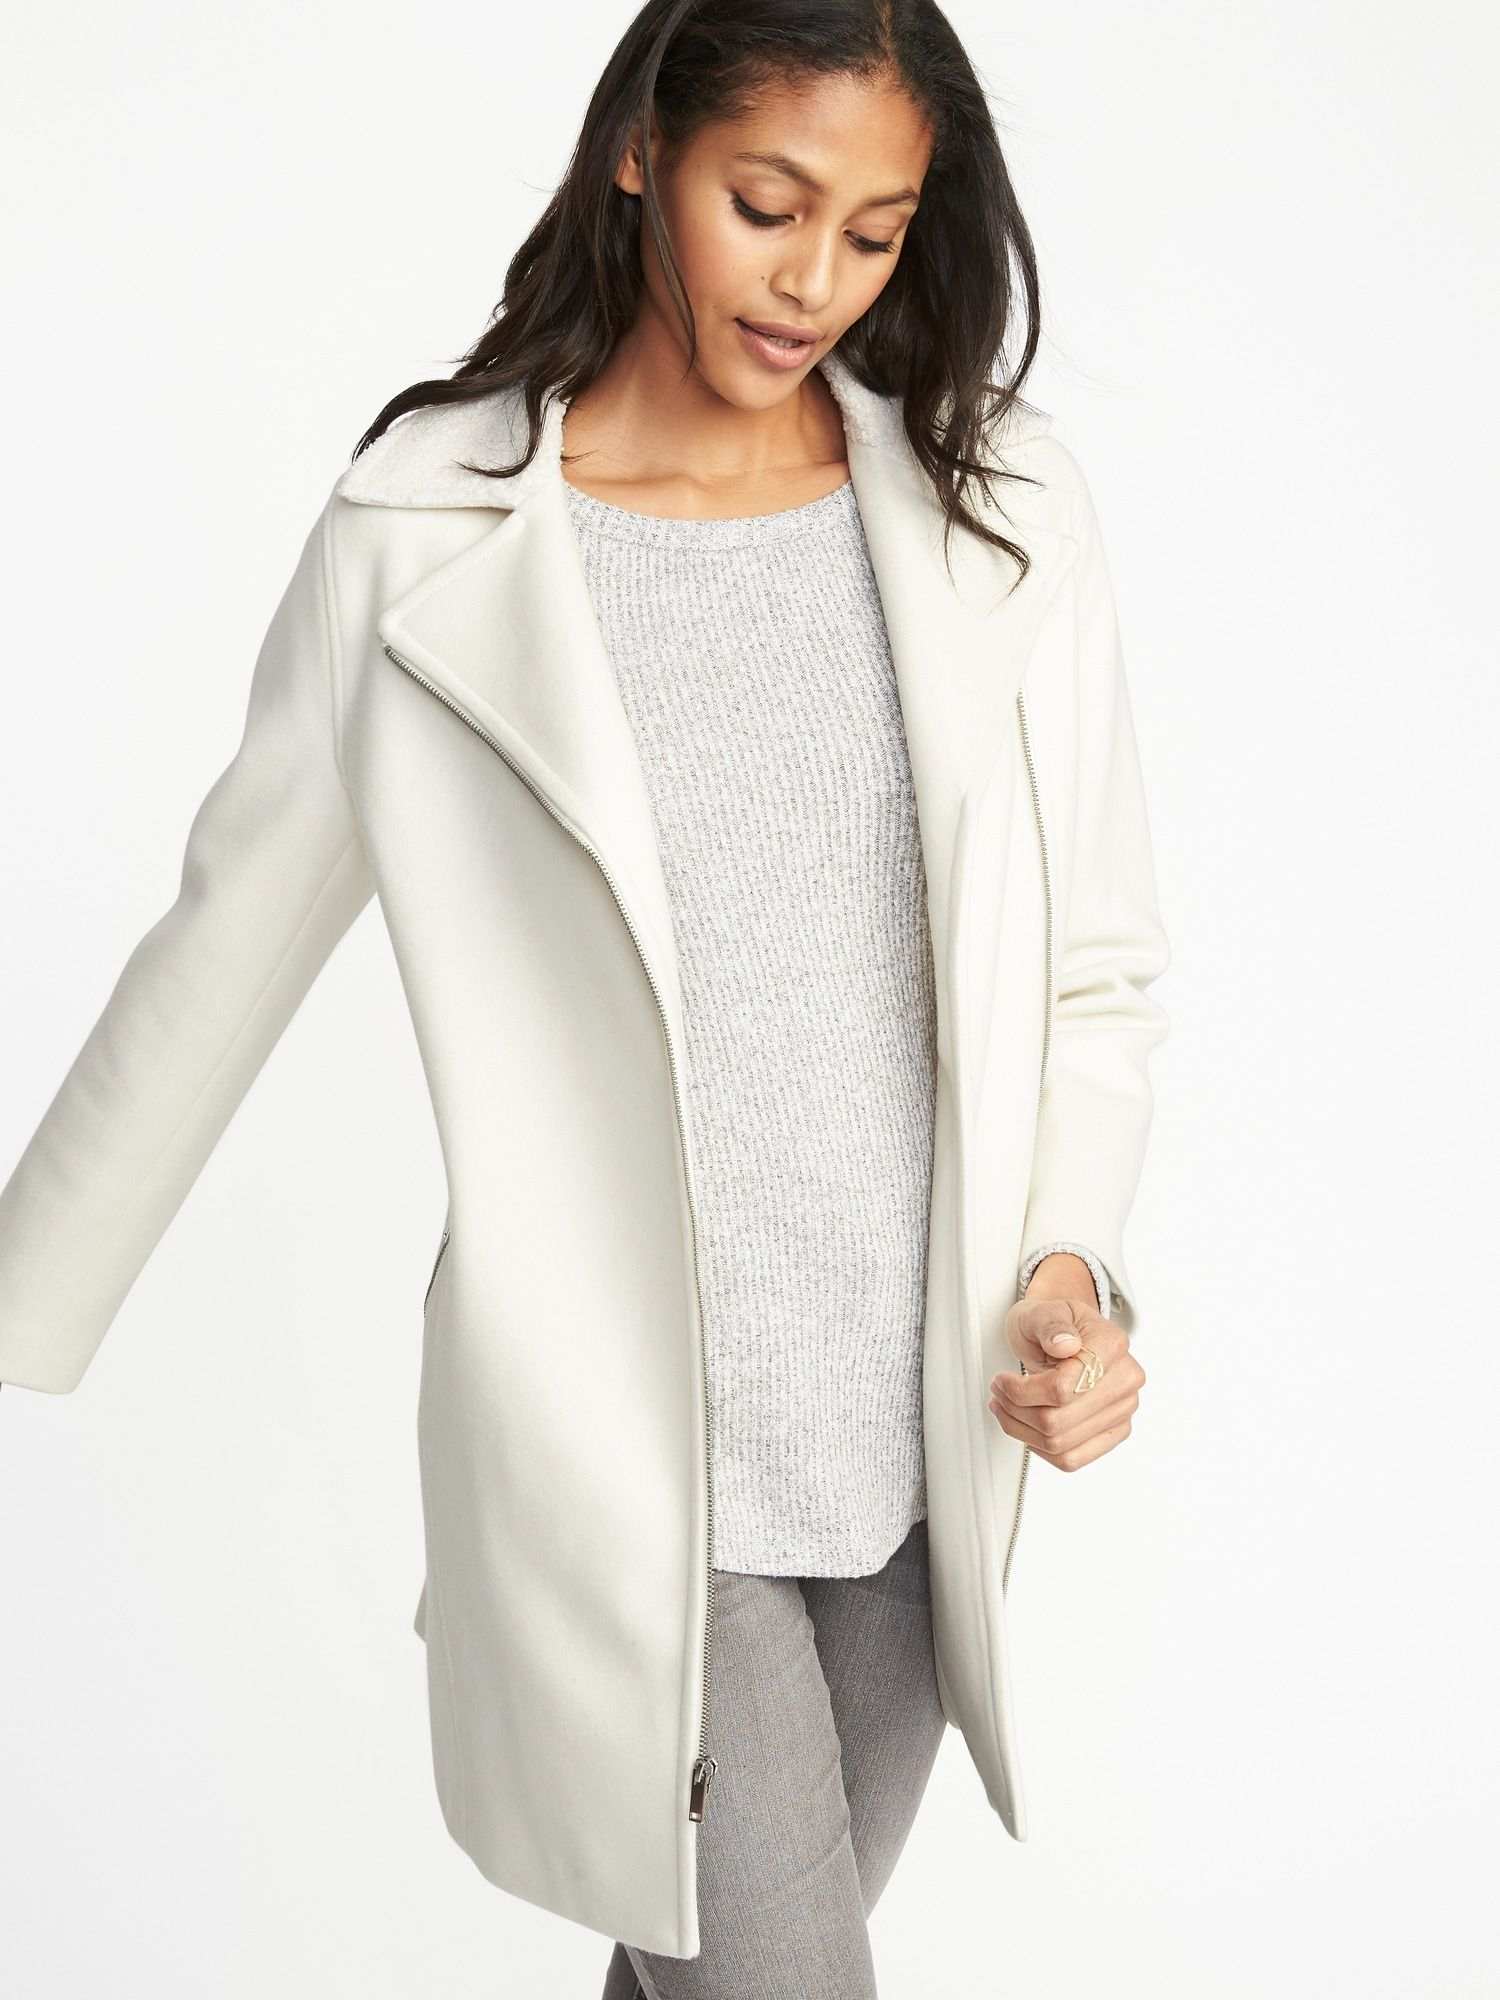 product Jackets for women, Old navy, Fashion